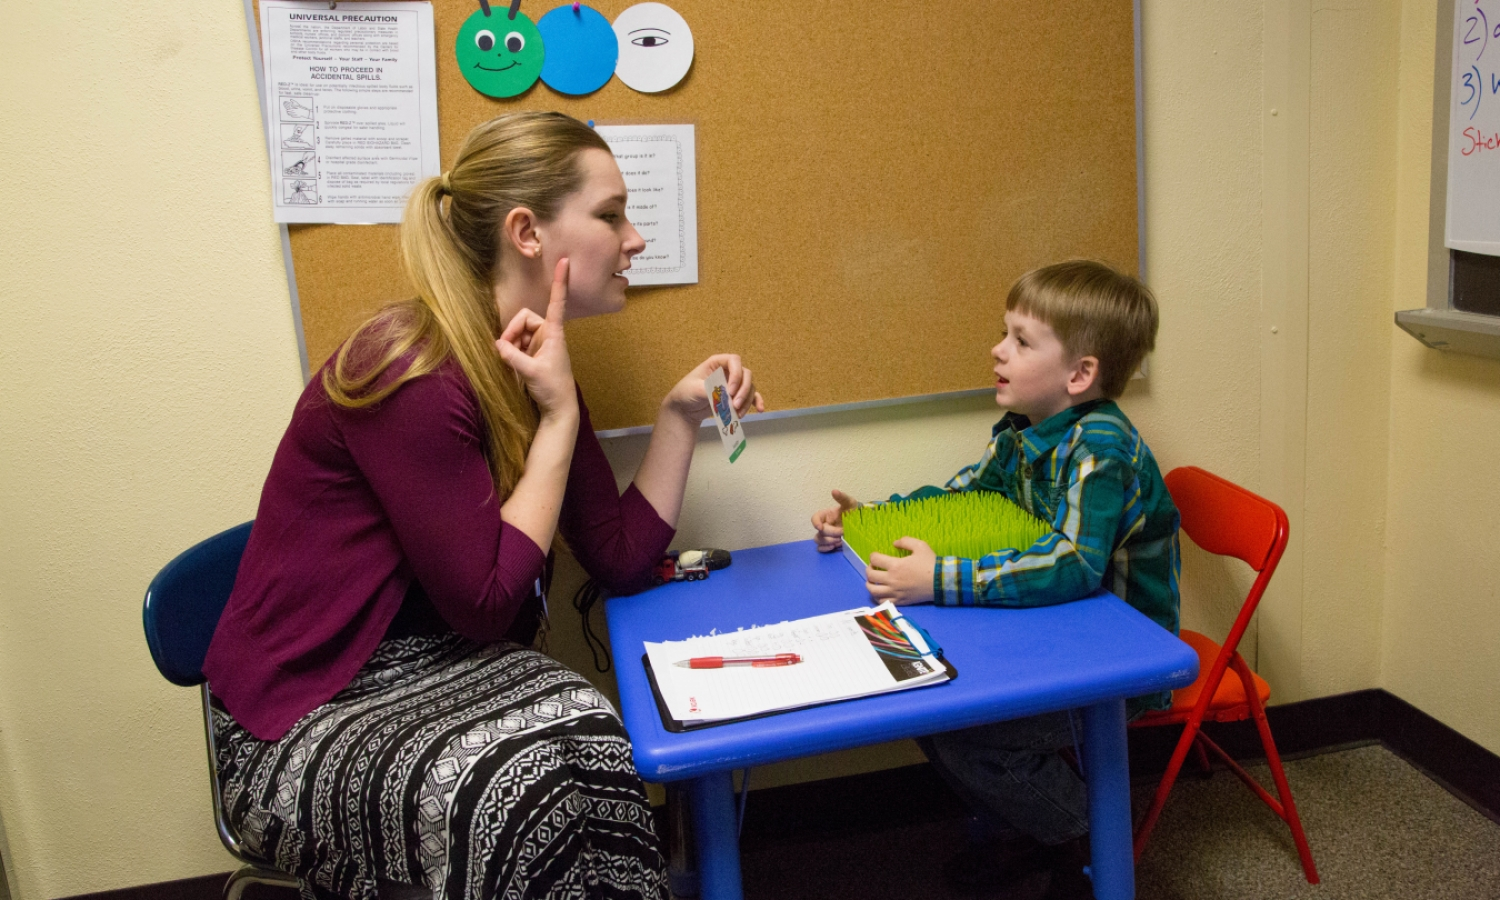 Communication Disorders & Sciences